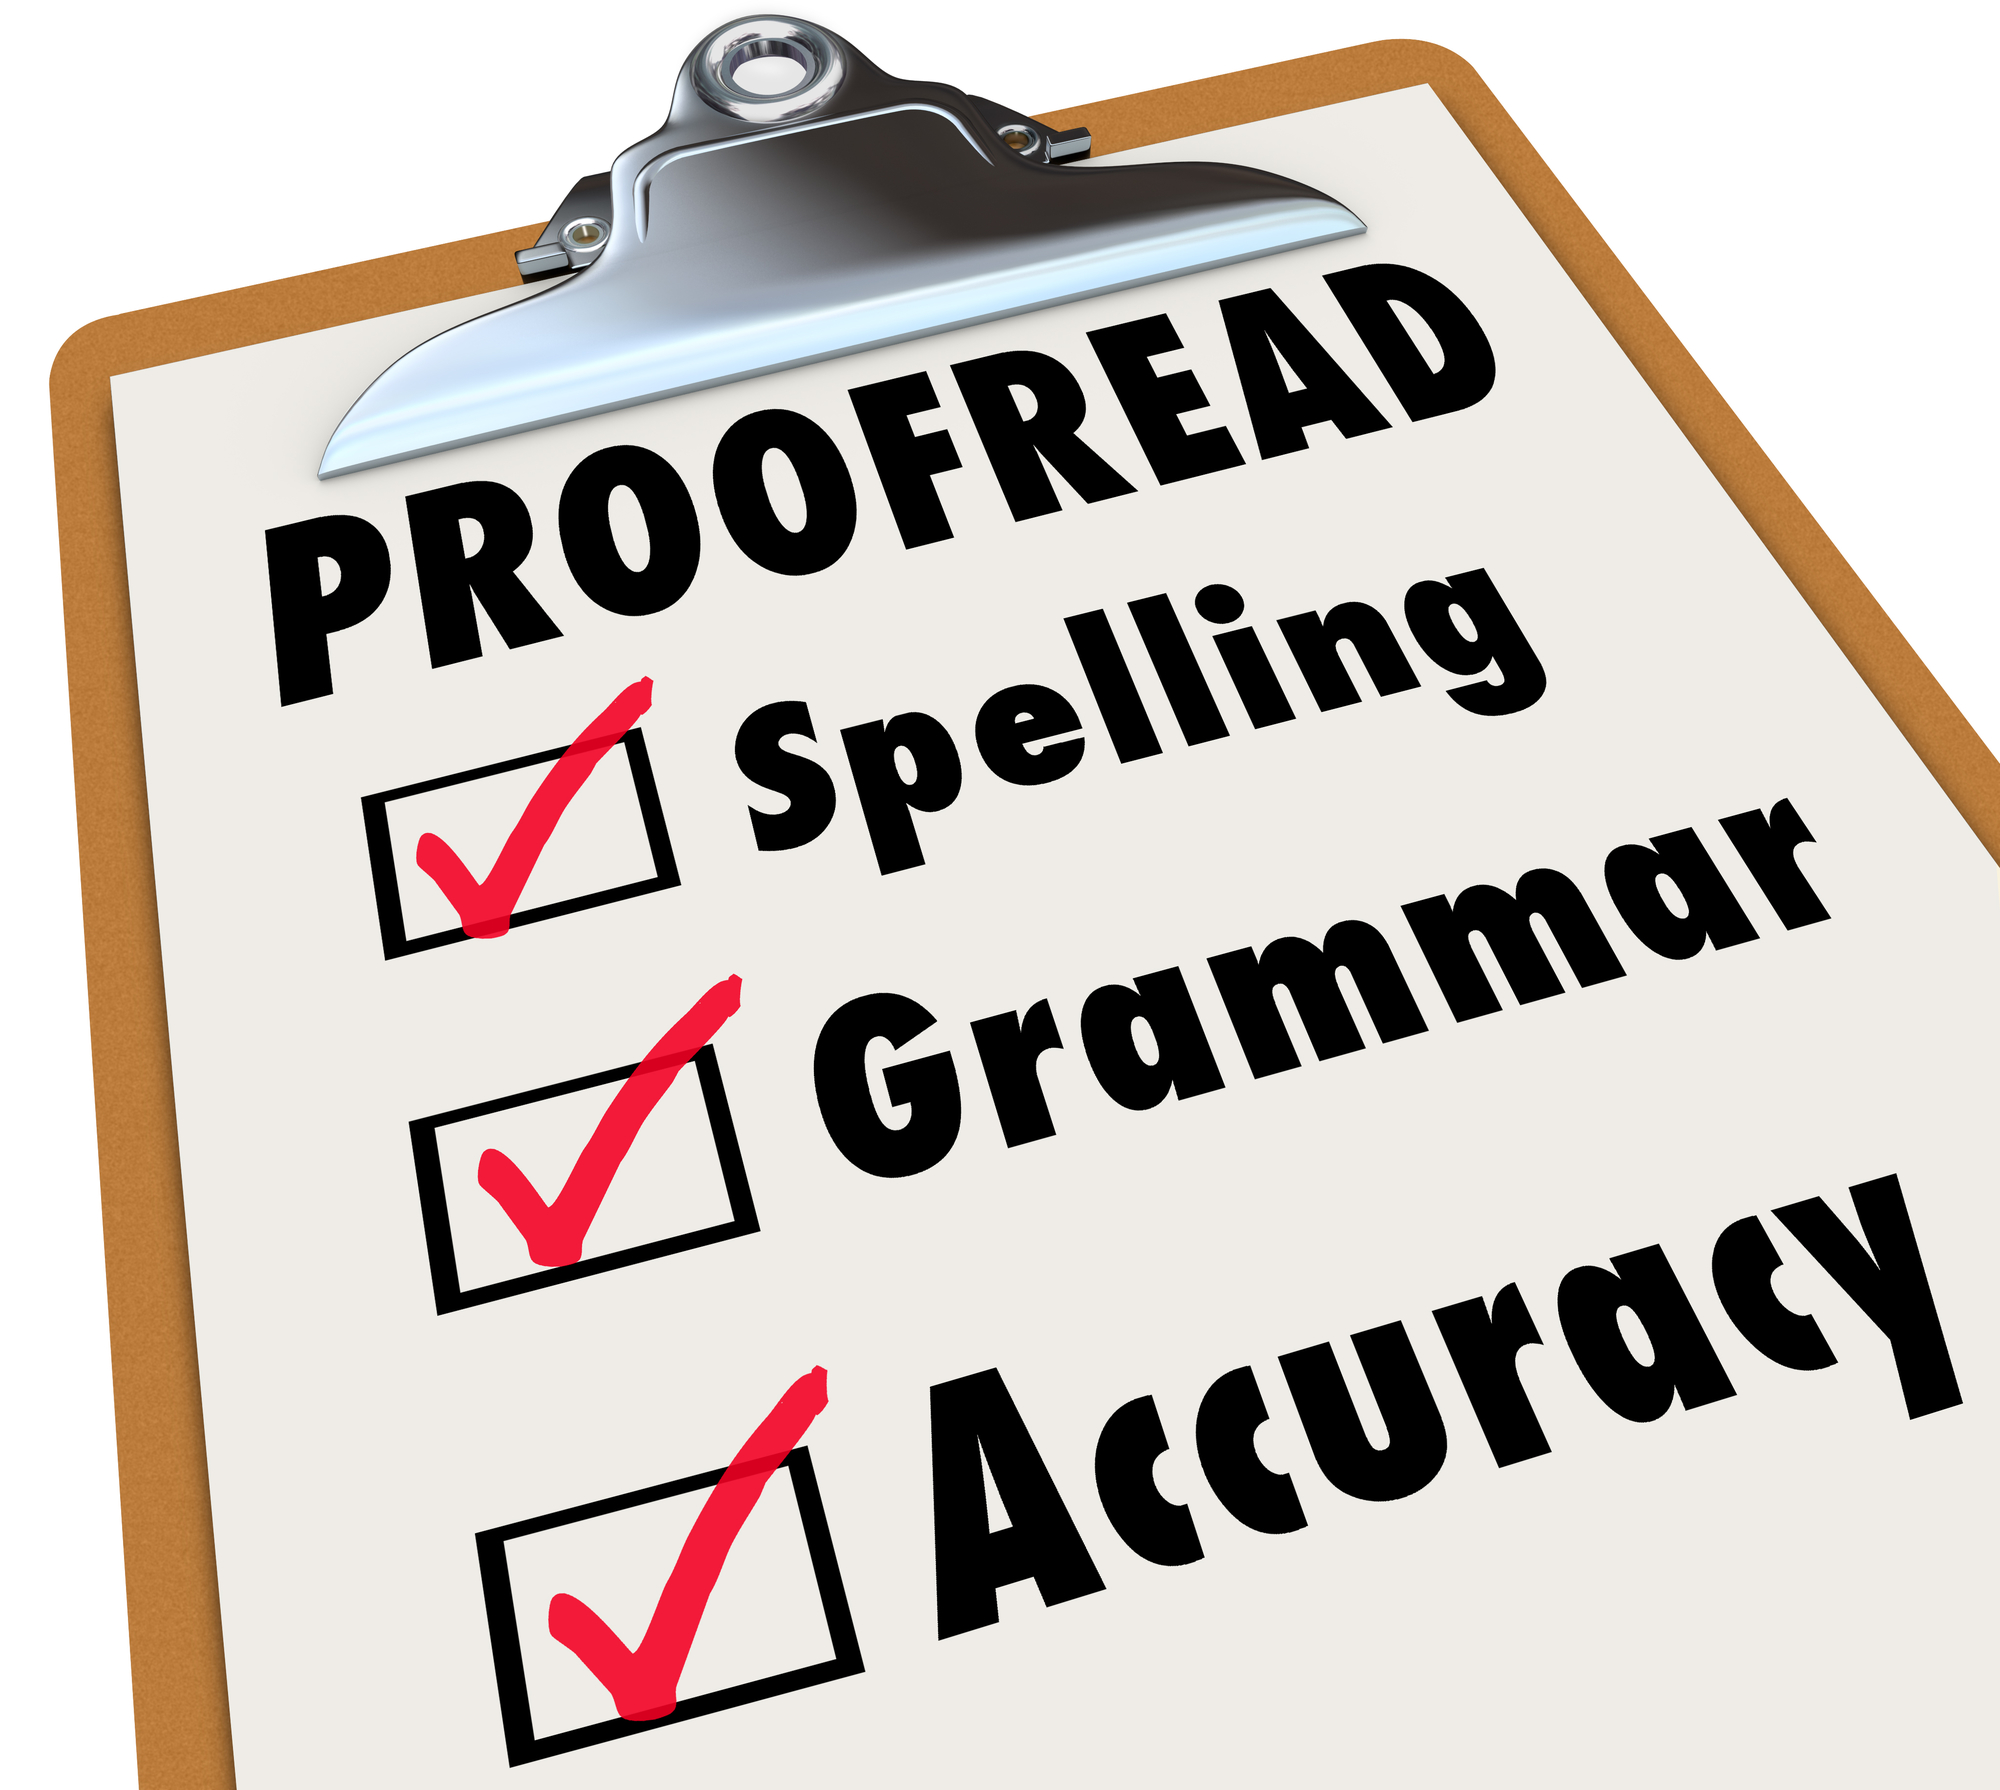 Proofreading | 5 Things You Must Stop Doing While Writing a College Assignment